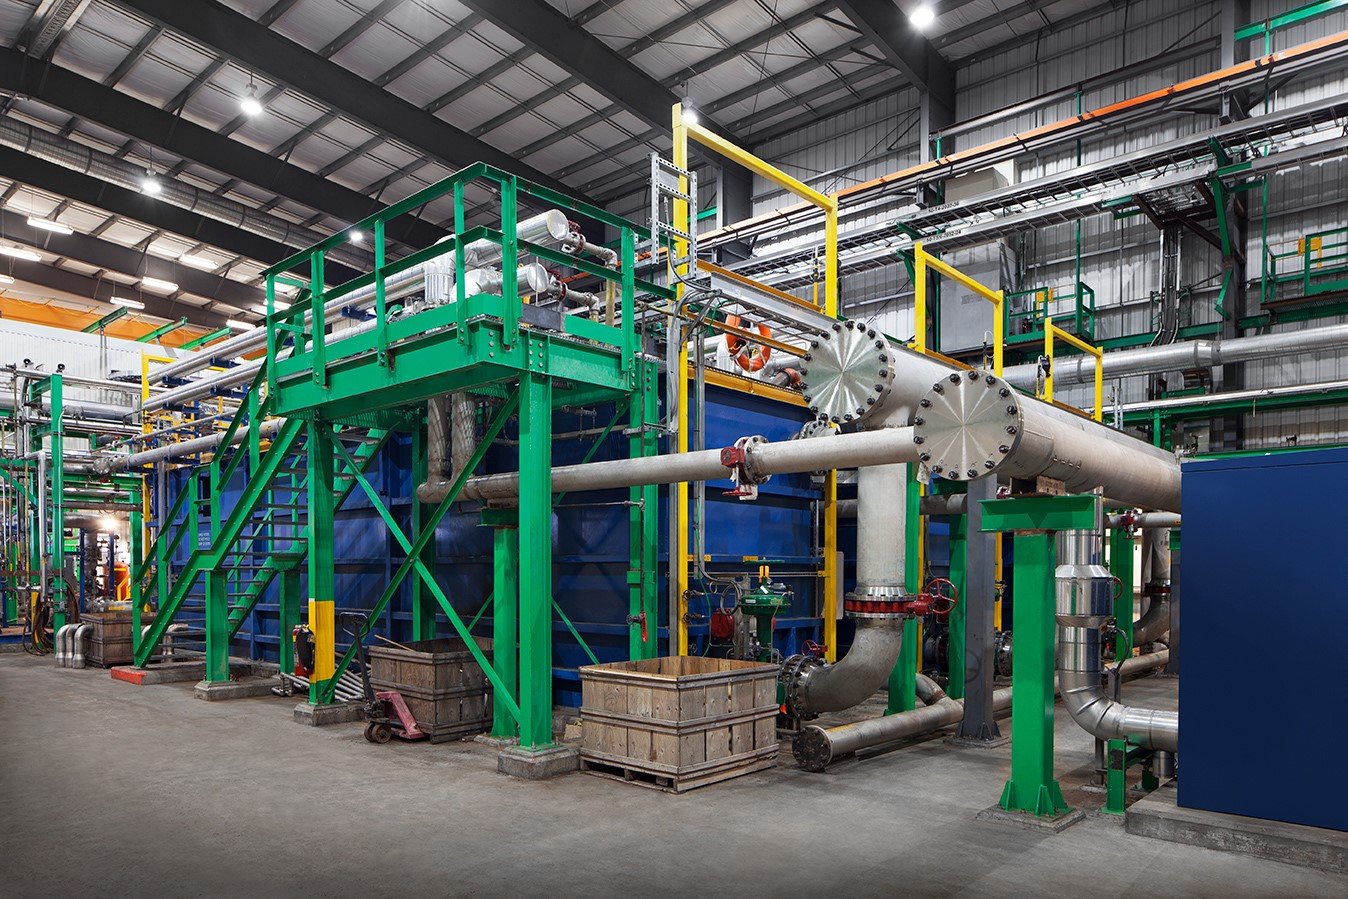 CRC installed GE's ZeeWeed MBR system as part of its effort to recycle 100 percent of its wastewater.jpg